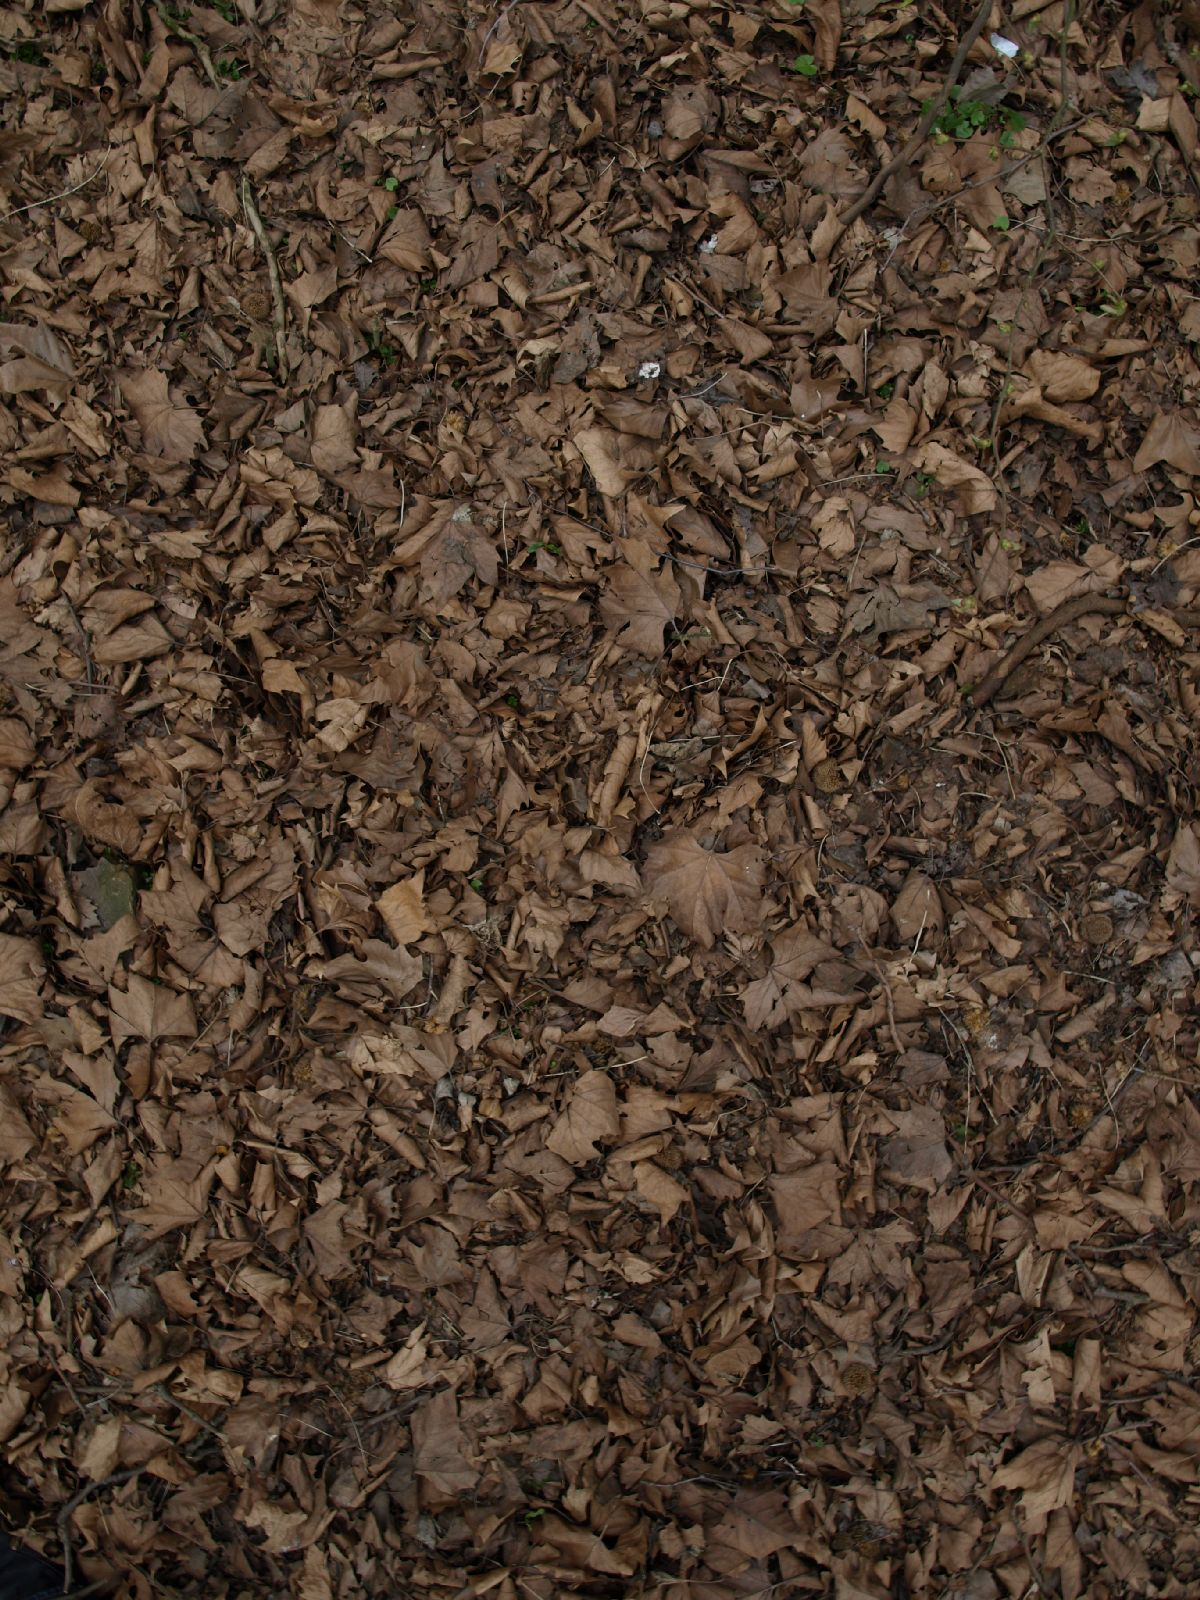 Ground-Nature_Texture_A_P4120853